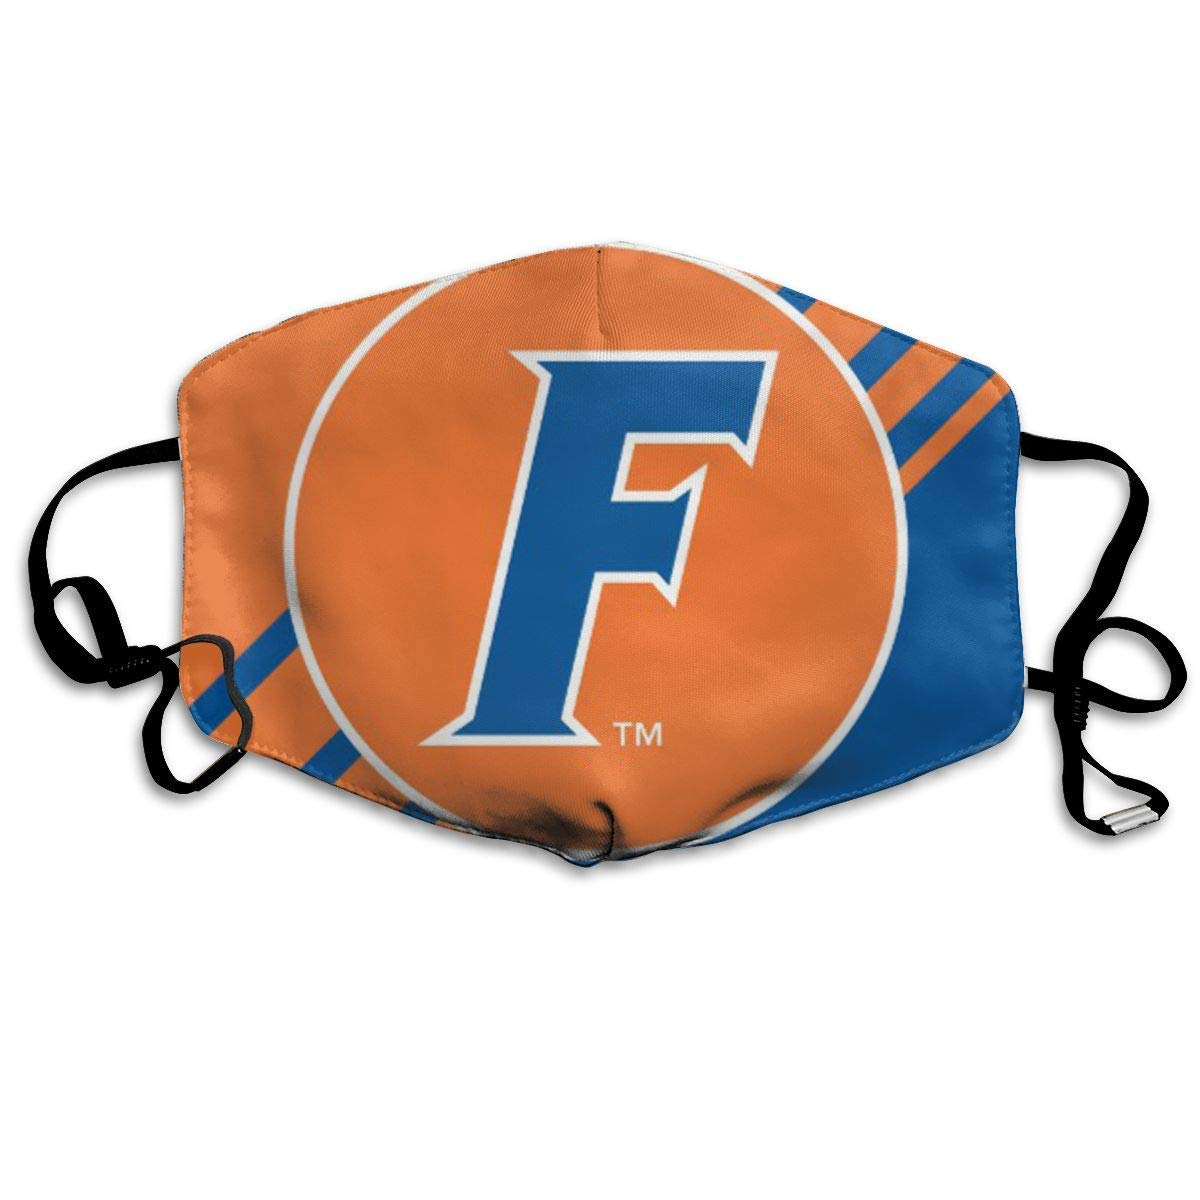 Daawqee Mascarillas, University of Florida F Anti Dust Face Mouth Cover Mask Respirator Cotton Protective Breath Healthy Safety Warm Windproof Mask